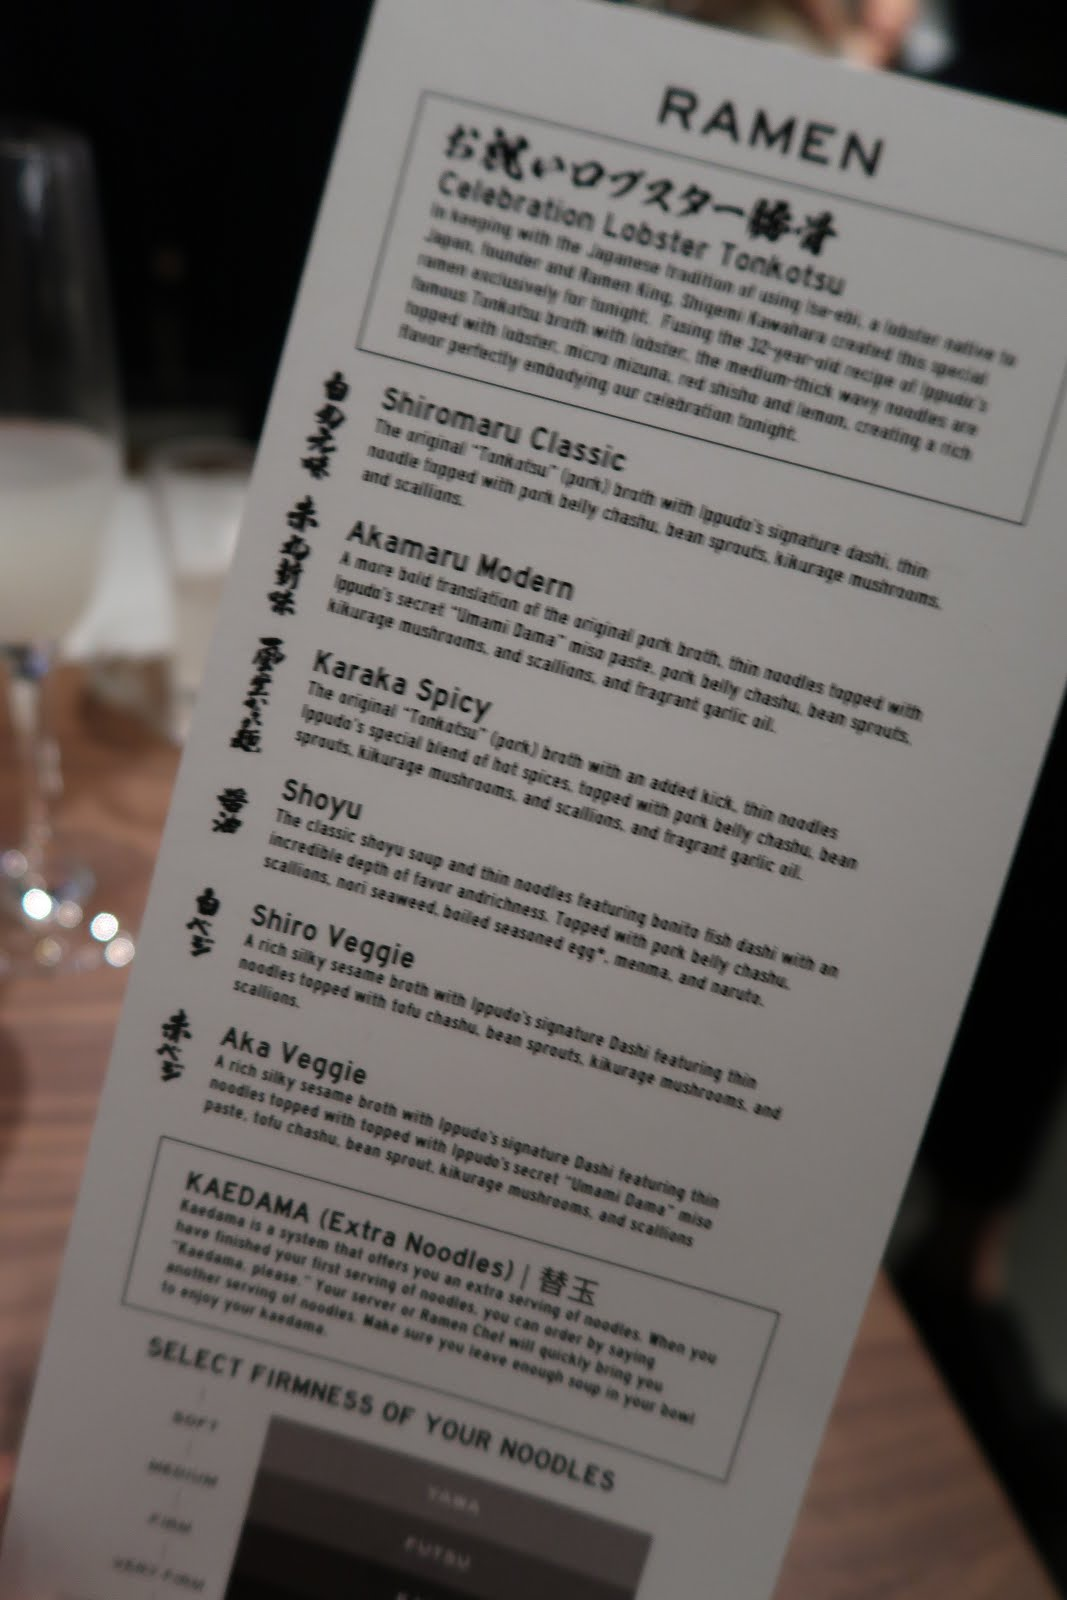 The menu from the San Francisco Ippudo Ramen restaurant opening.